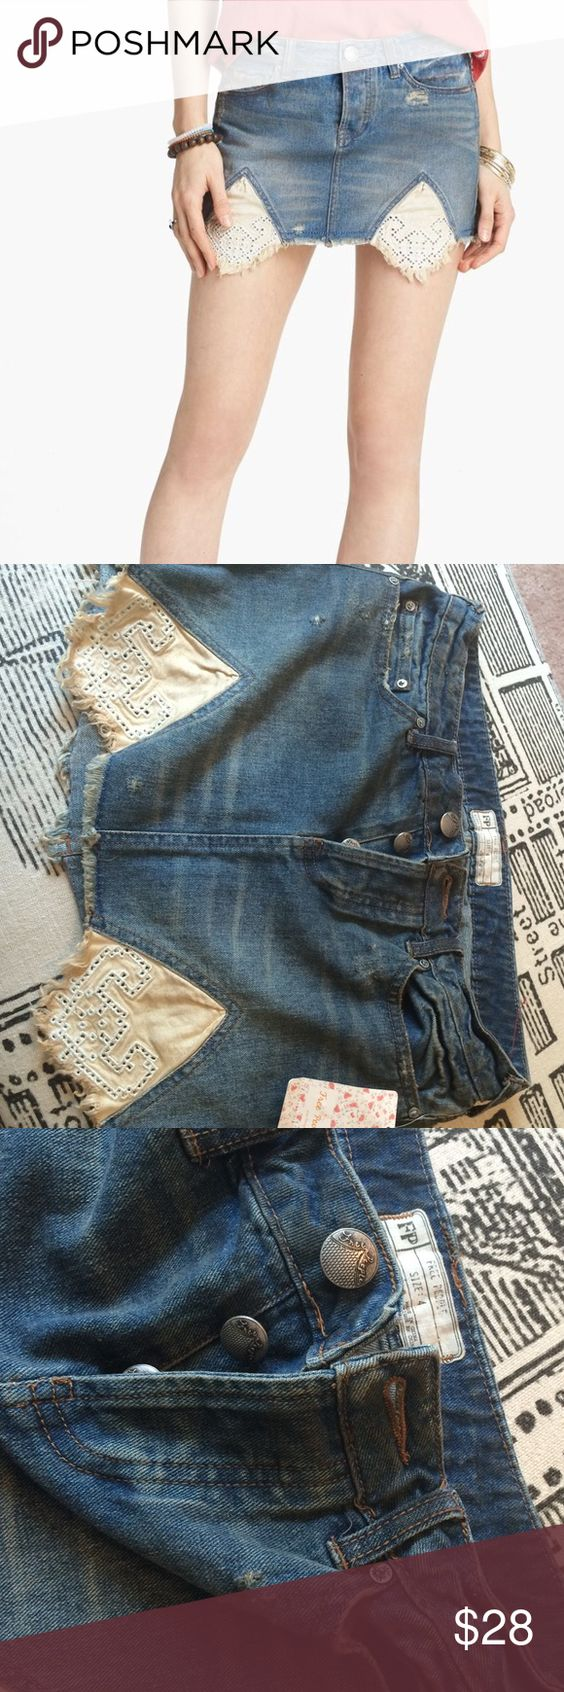 """Free People denim mini skirt NWTs Free People denim """"tire swing"""" mini skirt. Size 4 new with tags, cute little summer skirt with lace detail in the front, distressing around the front pockets and a button fly. 11 inches long, inside wIst measures 32. Free People Skirts Mini"""